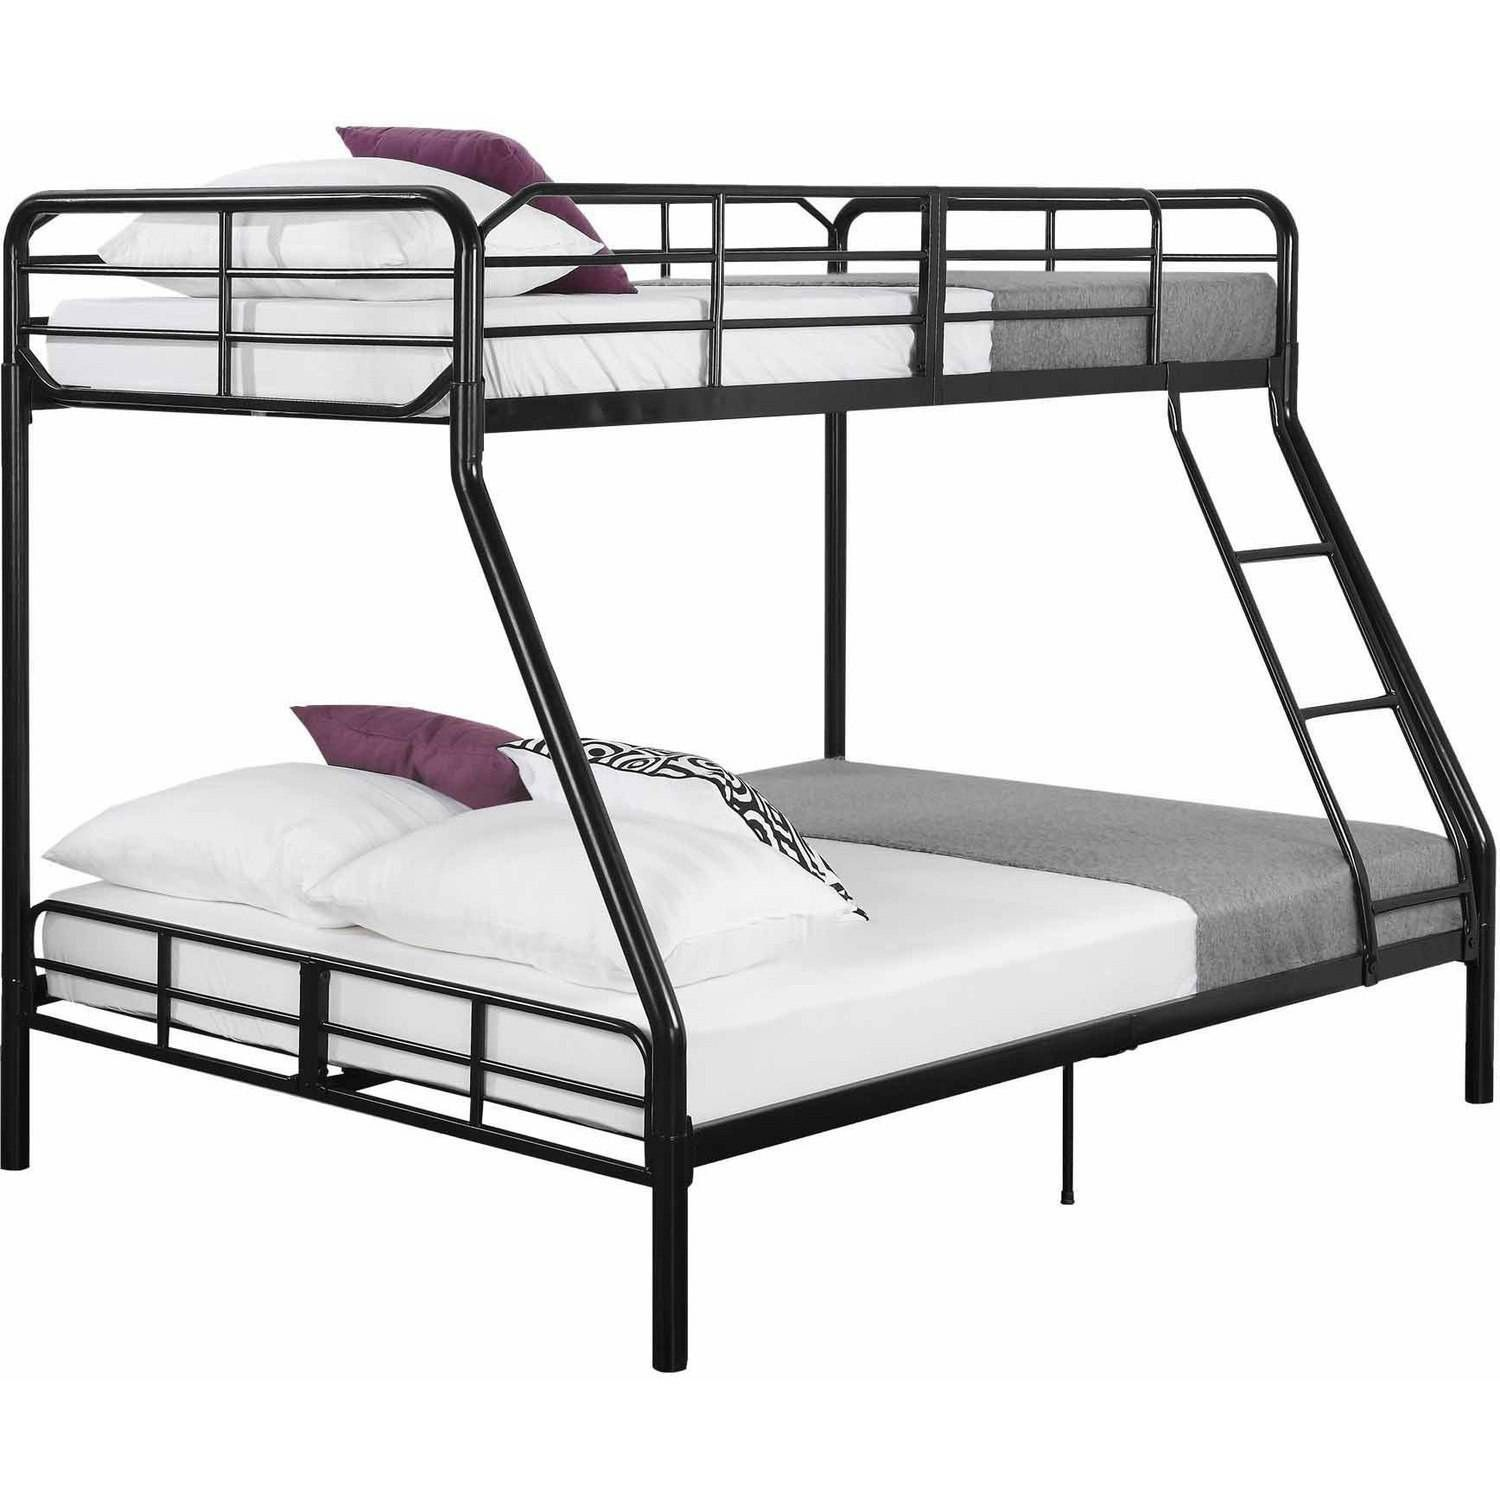 Full Twin Bunk Beds Neutral Interior Paint Colors Check More At